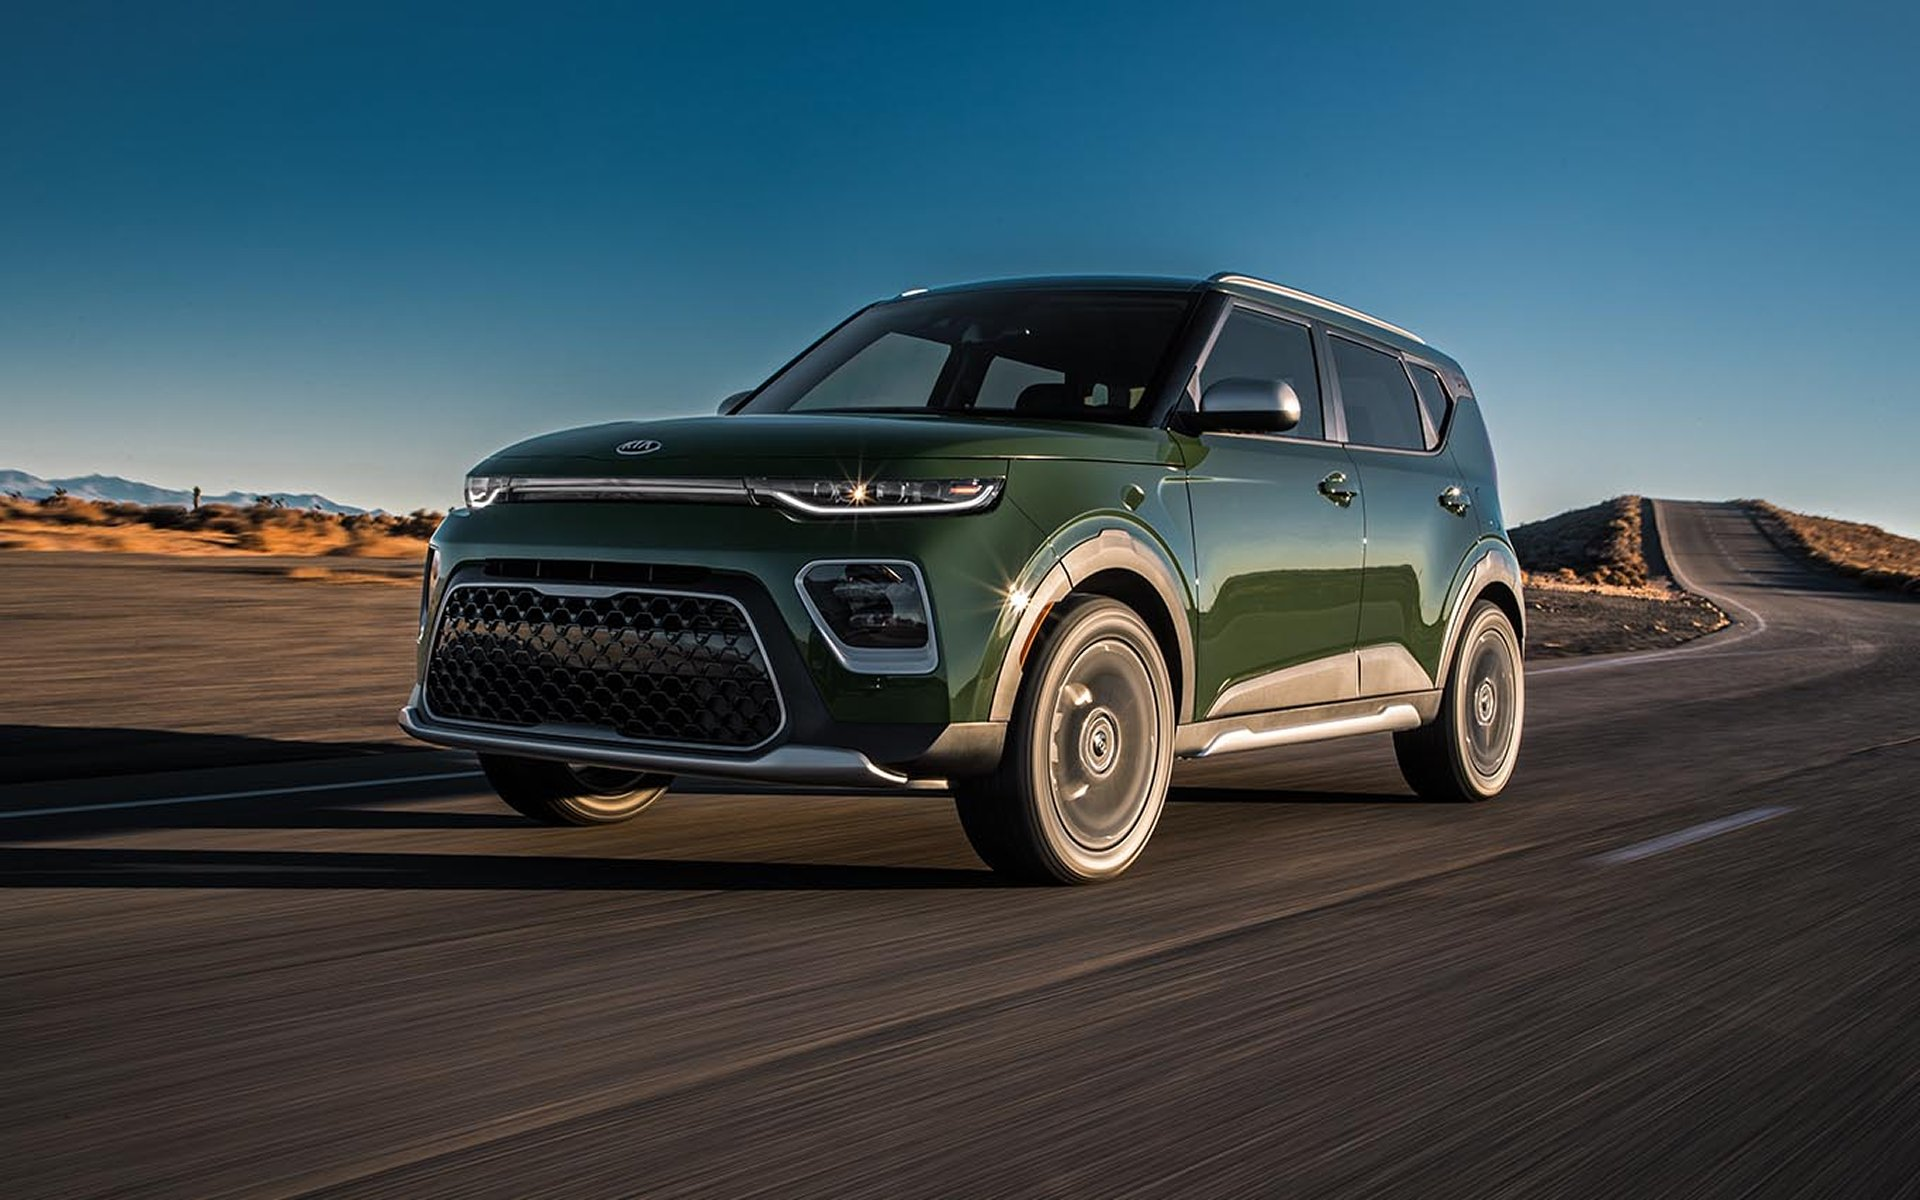 Exciting Things Are Coming For Kia With The Introduction Of Next Generation 2020 Soul Keeps Unique Boxy Style That